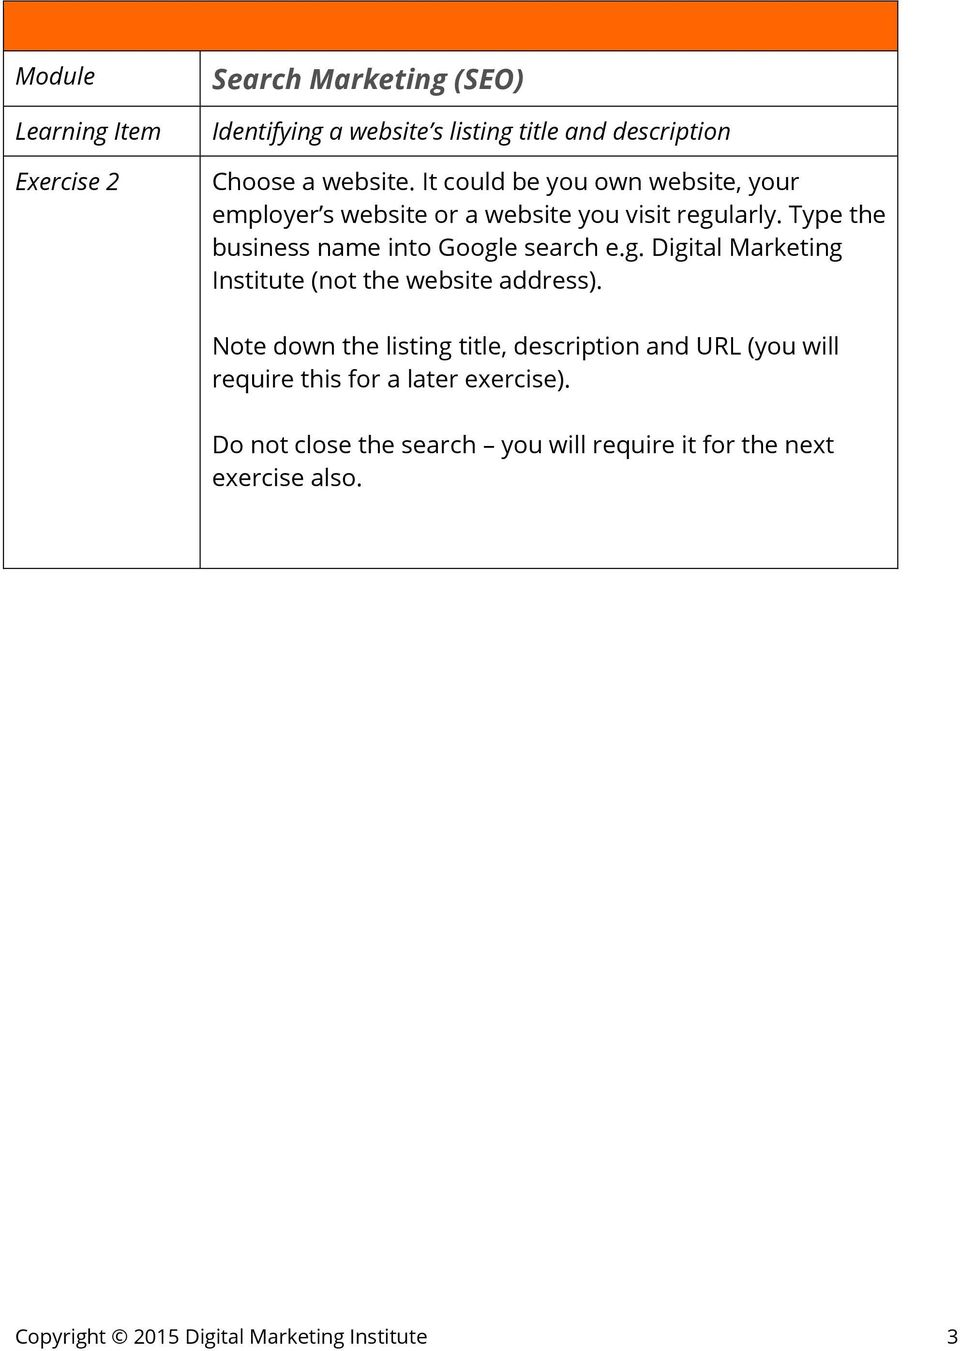 Type the business name into Google search e.g. Digital Marketing Institute (not the website address).